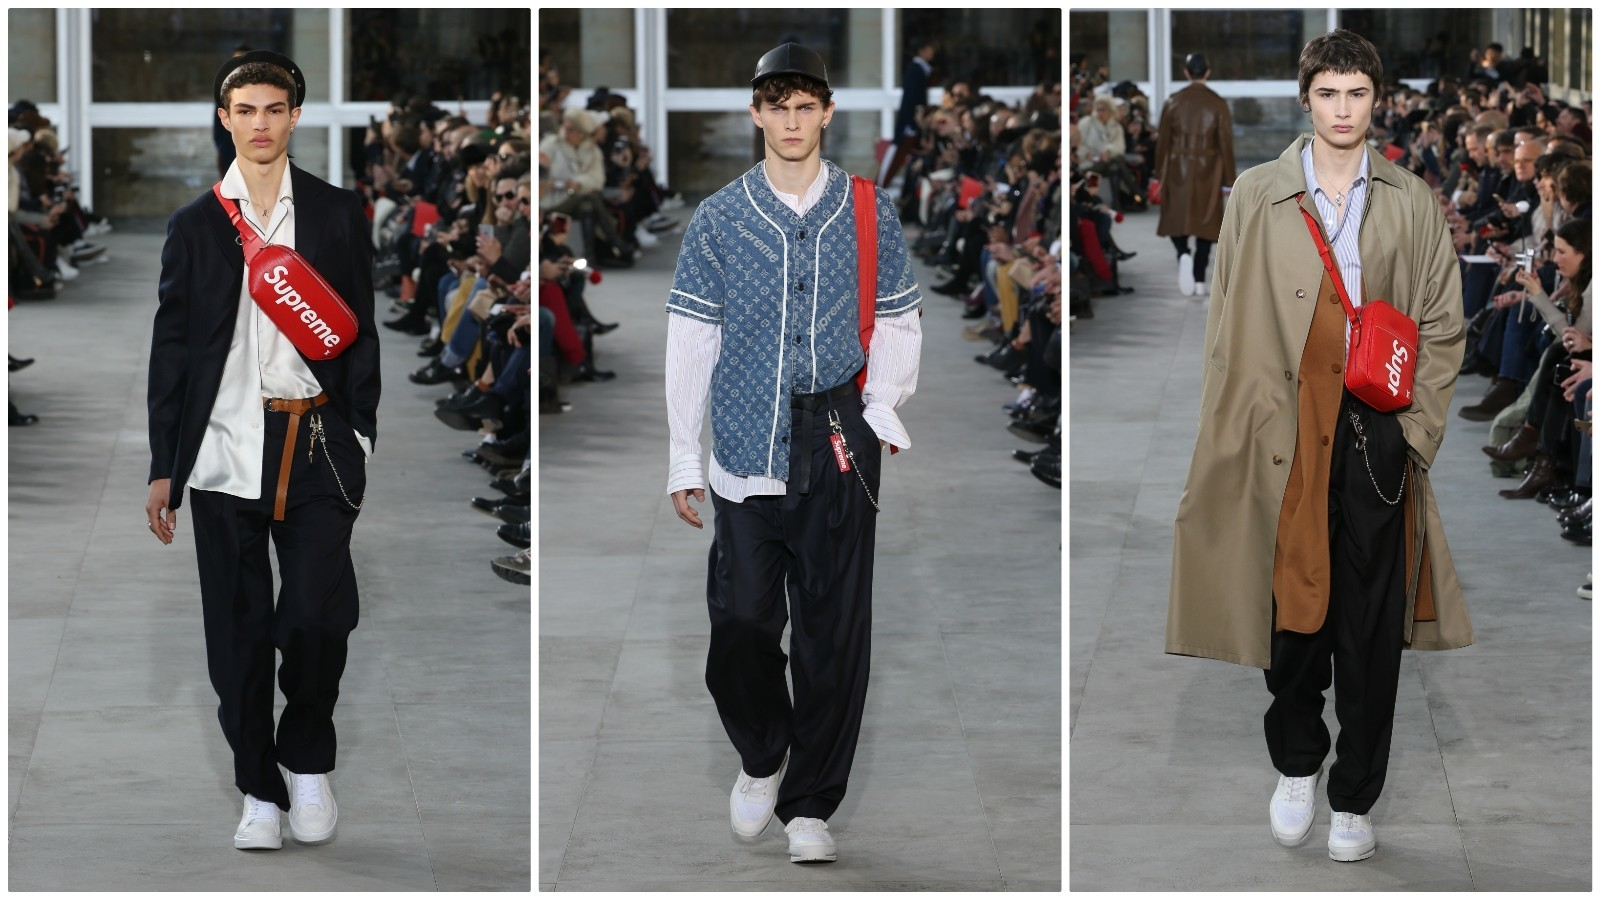 Pieces from Louis Vuitton's capsule collection with Supreme appear on the Paris runway in January.